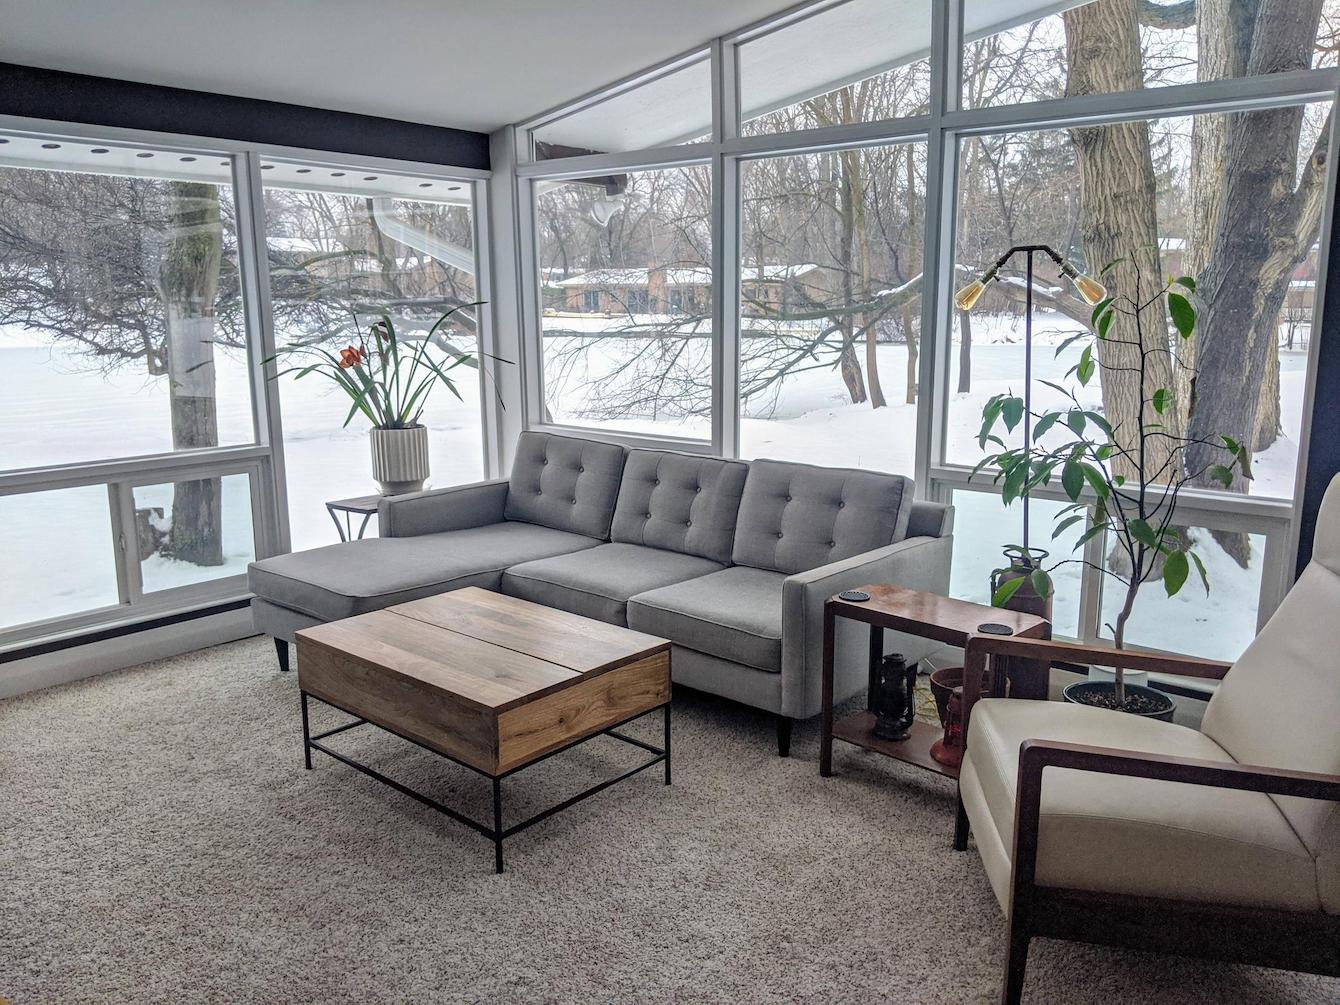 Metro Detroit Living Room With Huge Windows